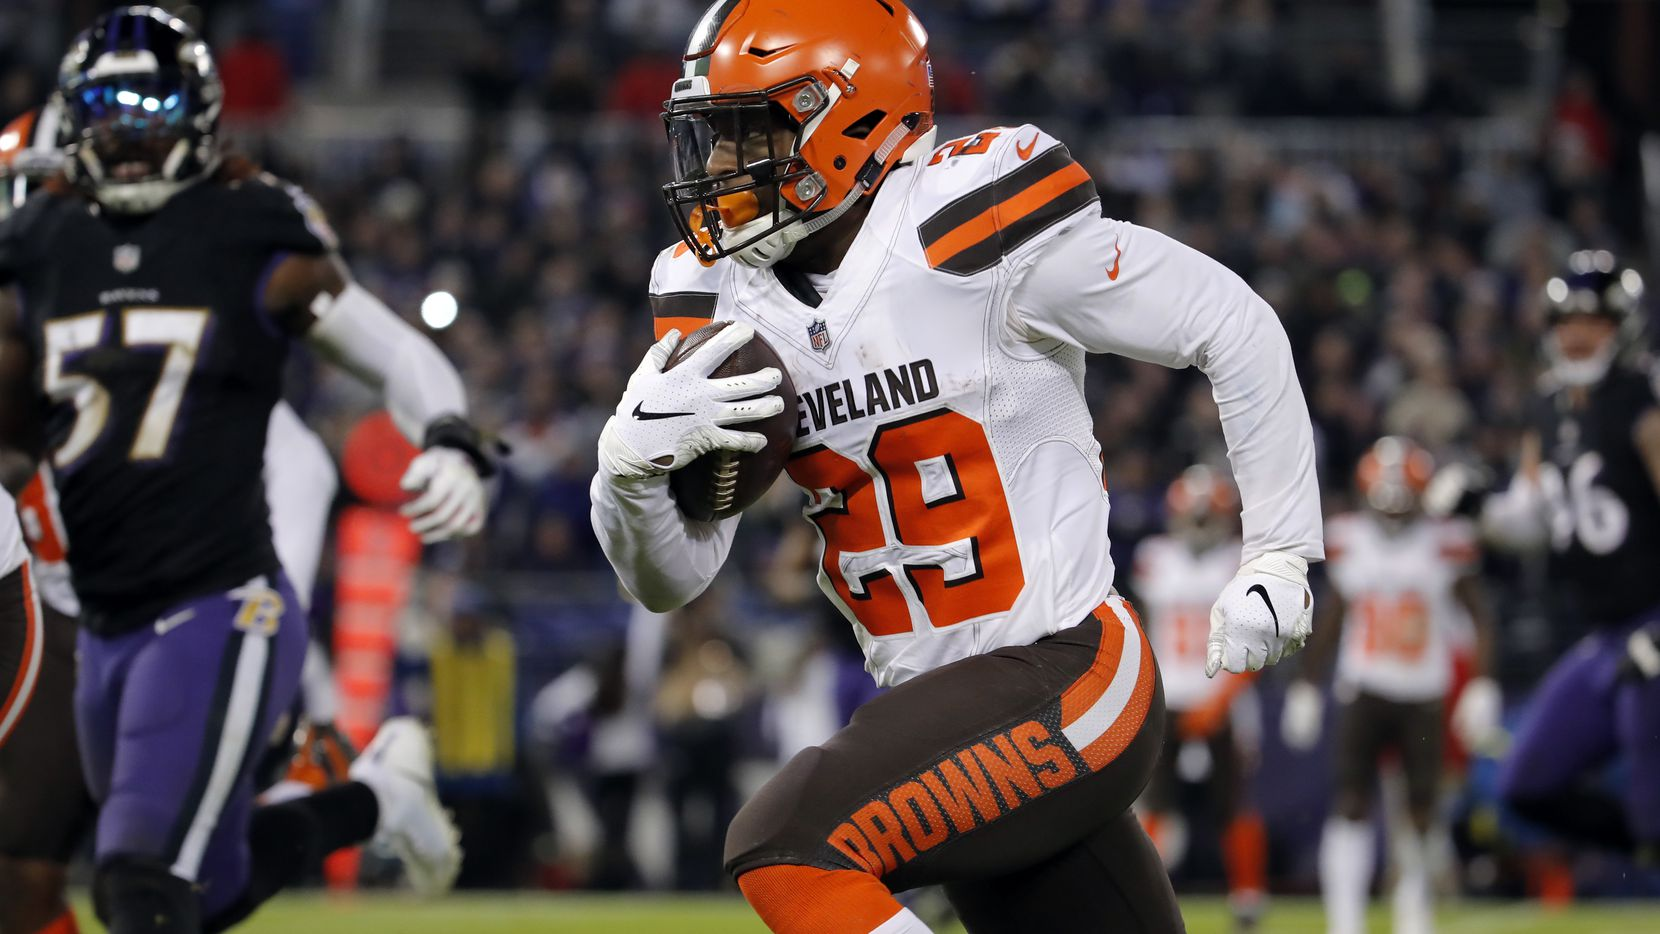 FILE - Cleveland Browns running back Duke Johnson rushes the ball in the second half of an NFL football game against the Baltimore Ravens, Sunday, Dec. 30, 2018, in Baltimore. (AP Photo/Carolyn Kaster)